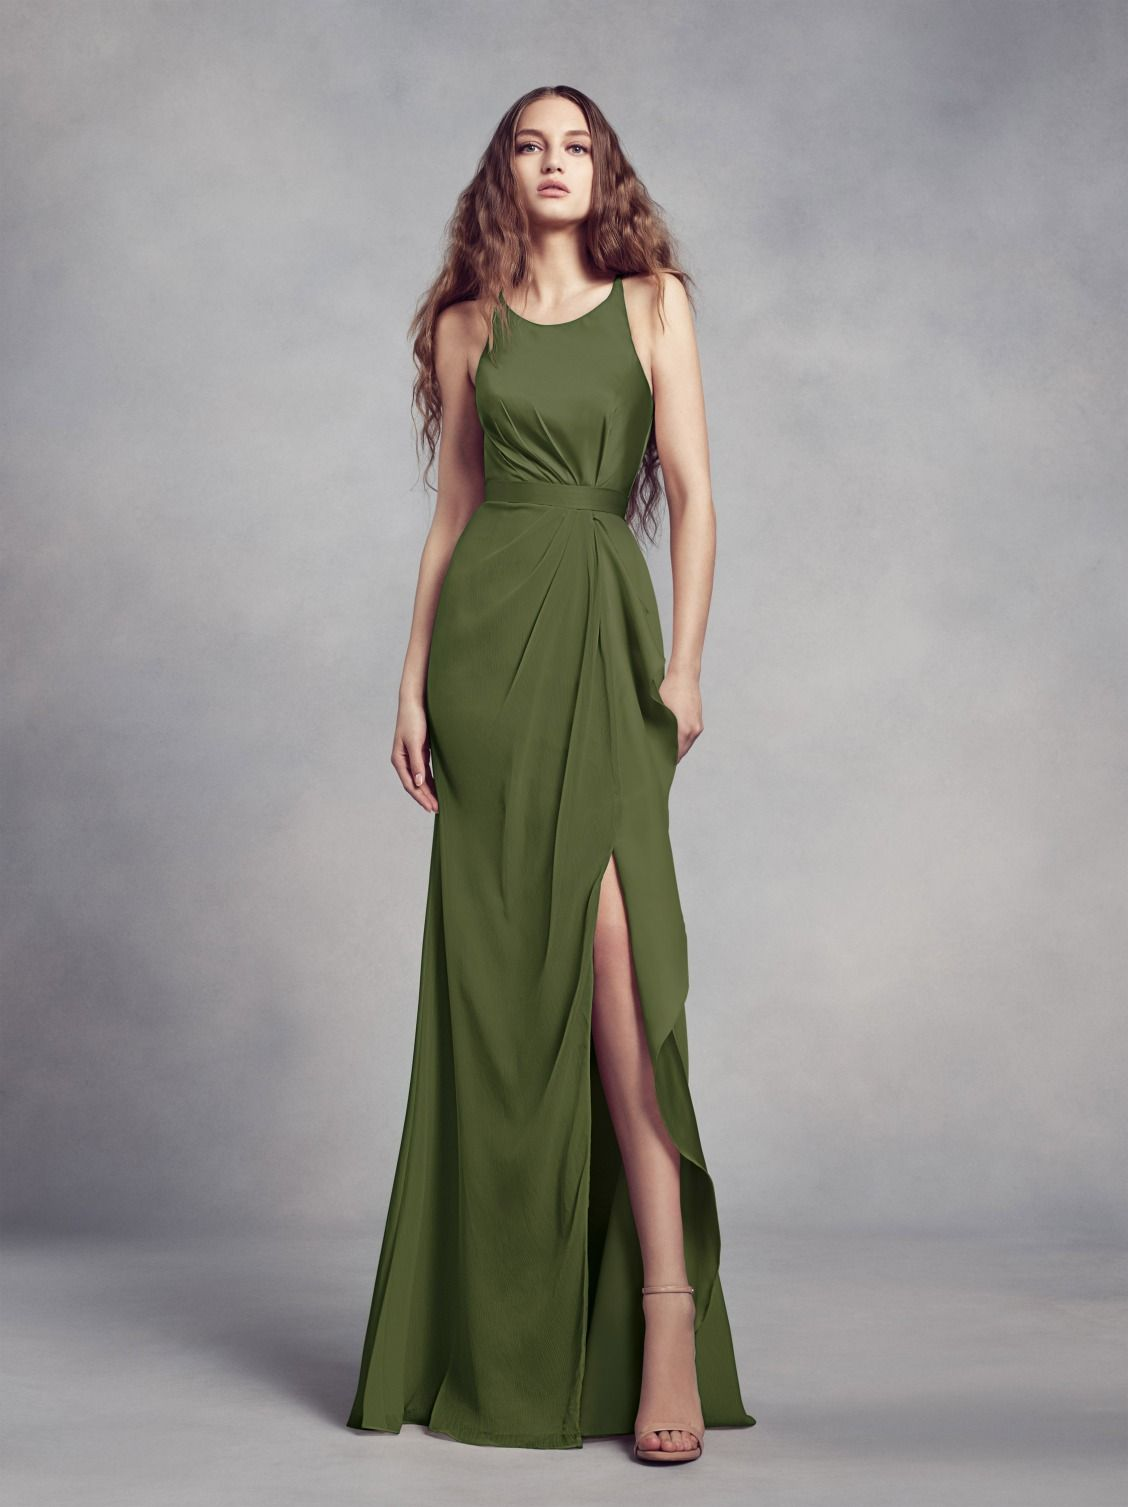 c190702647 Olive green bridesmaid dress from the WHITE by Vera Wang bridesmaid dress  collection. The halter neckline and ruffle detail down the front are  incredibly ...